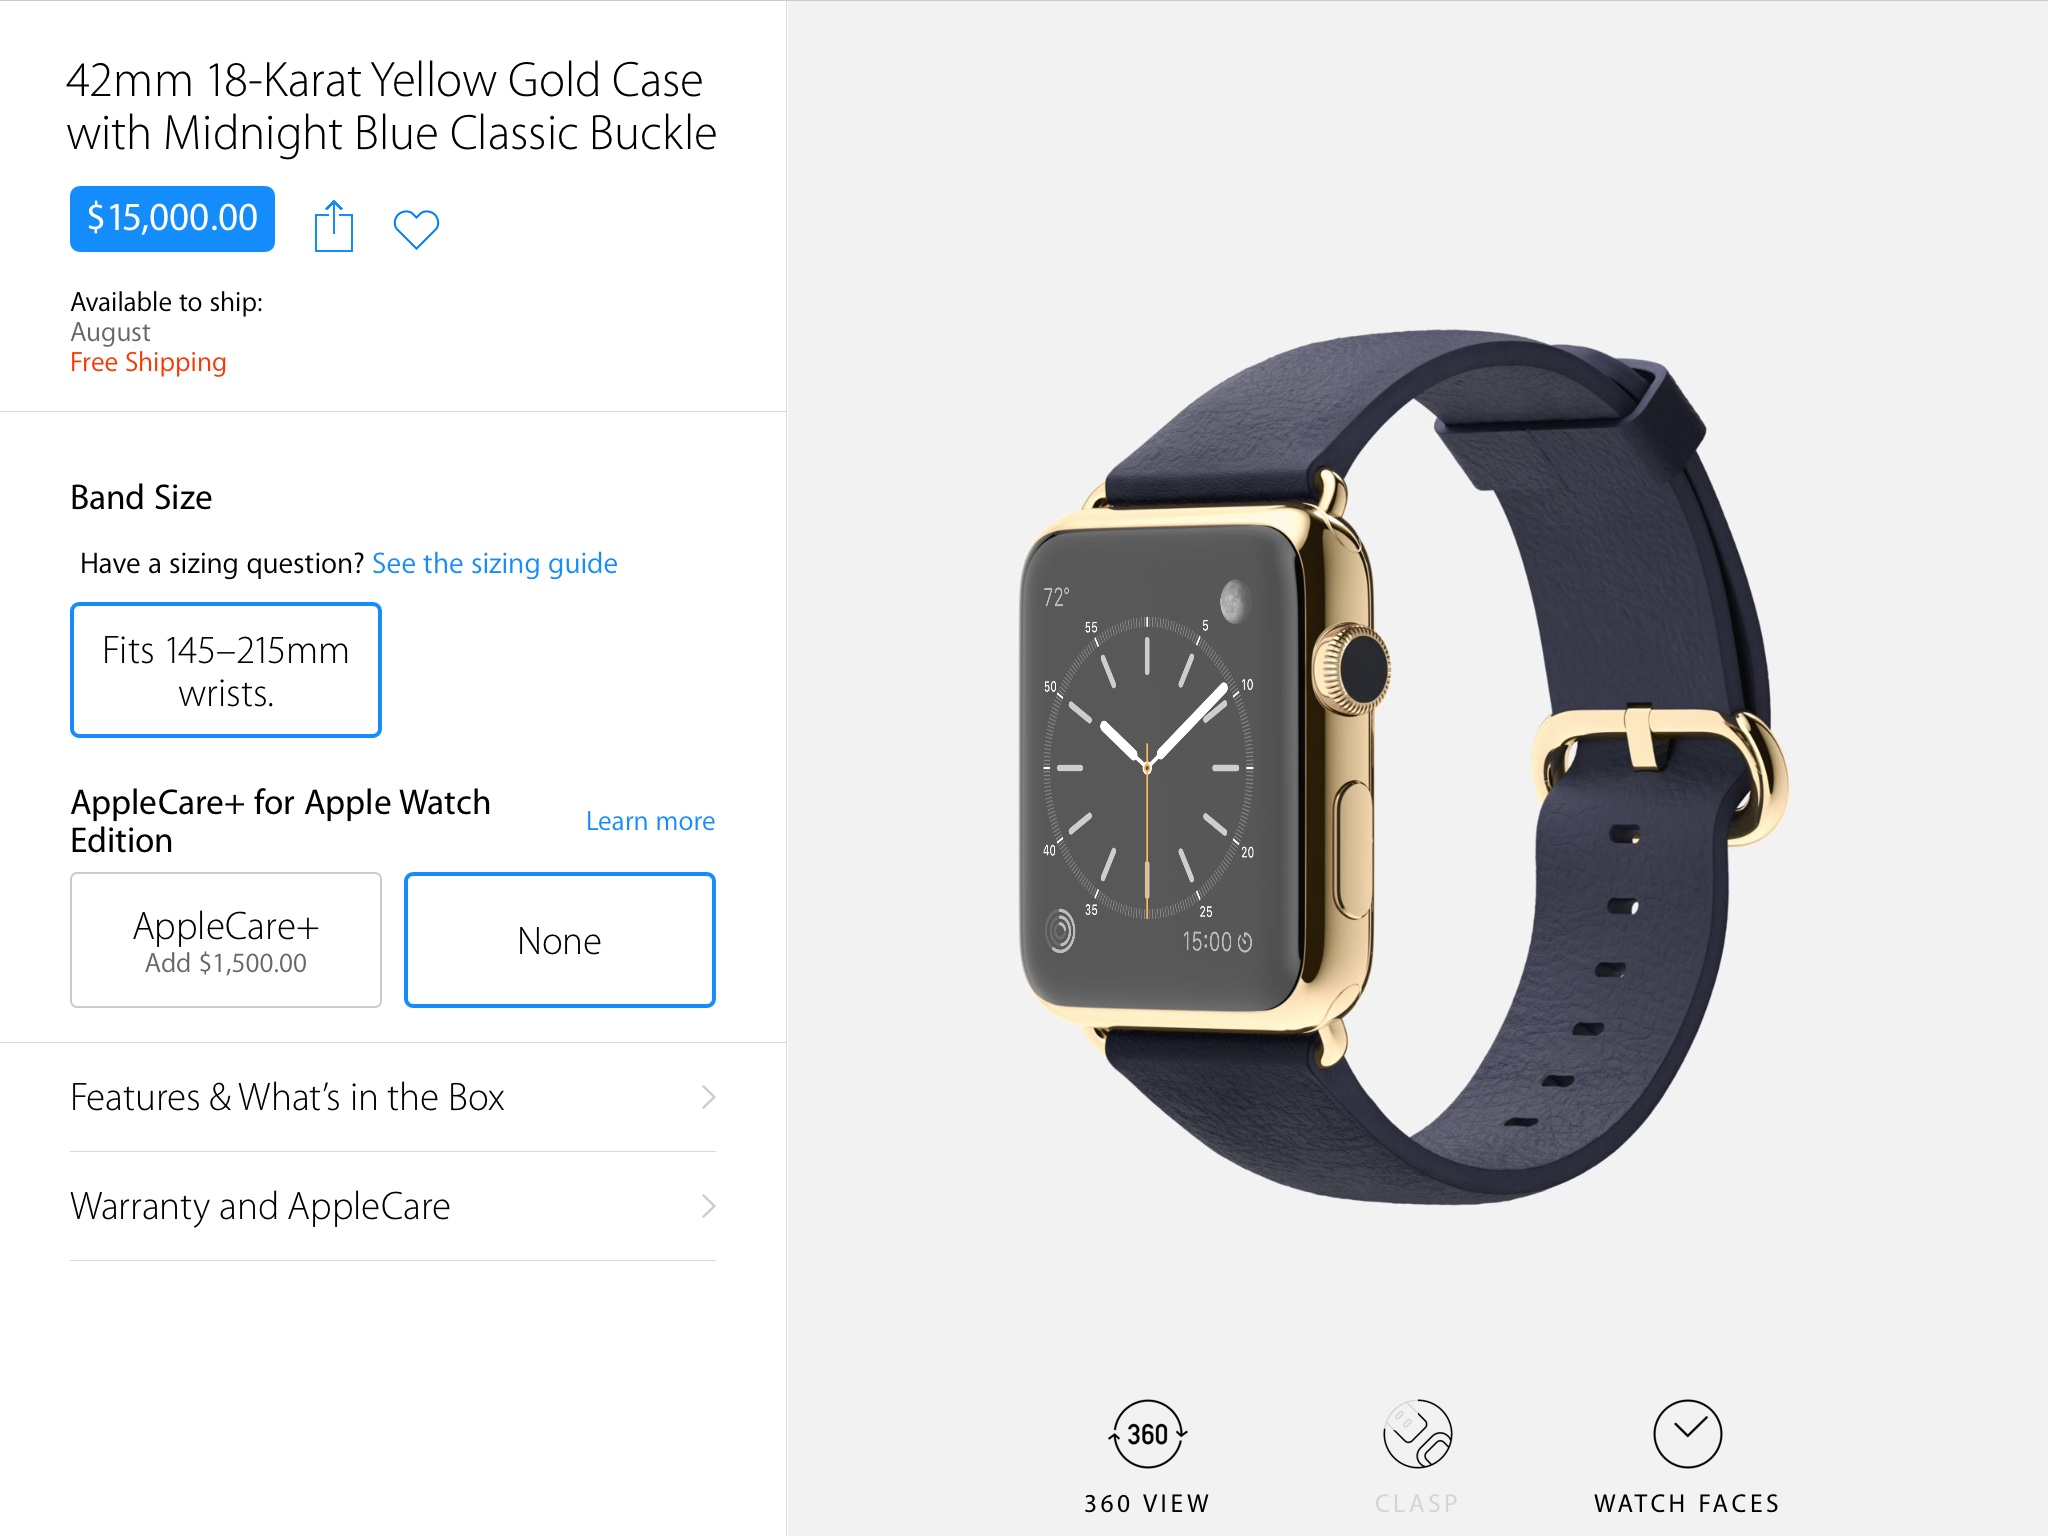 Apple Watch Edition Ships August 2015